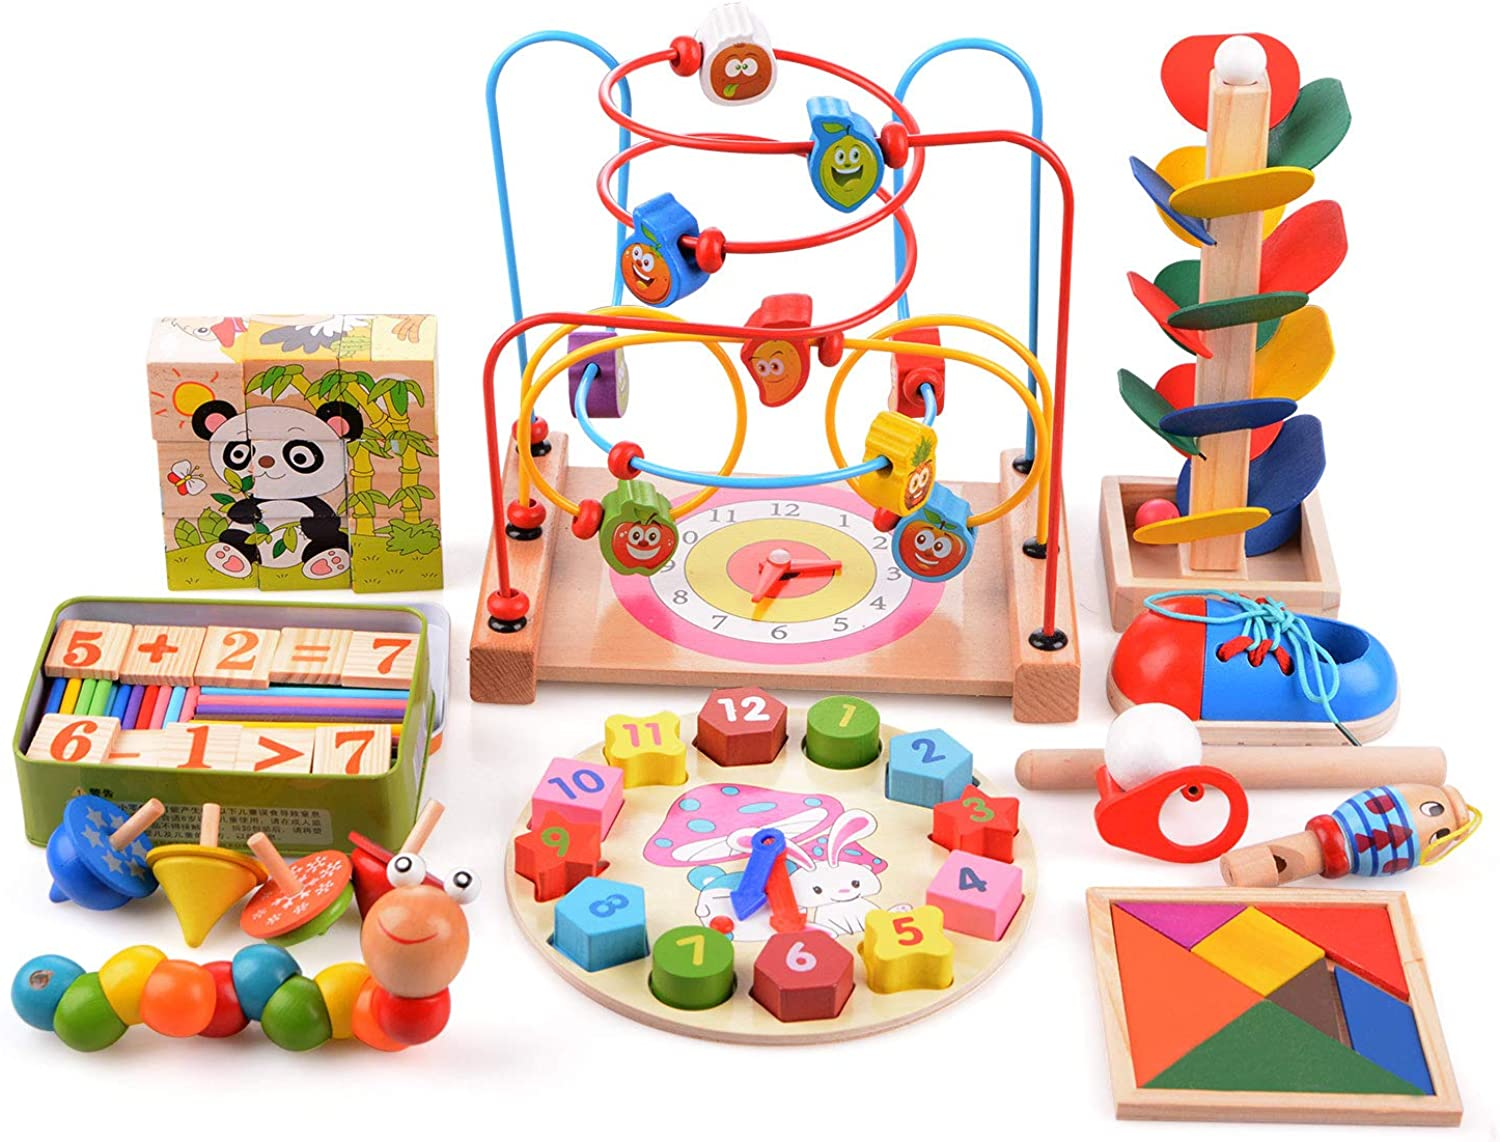 Bead Maze Wooden Baby Toddler Toys Set Including Cube Block Tangram Puzzles Wooden Whistle Educational Toy for Boys Girls Gift